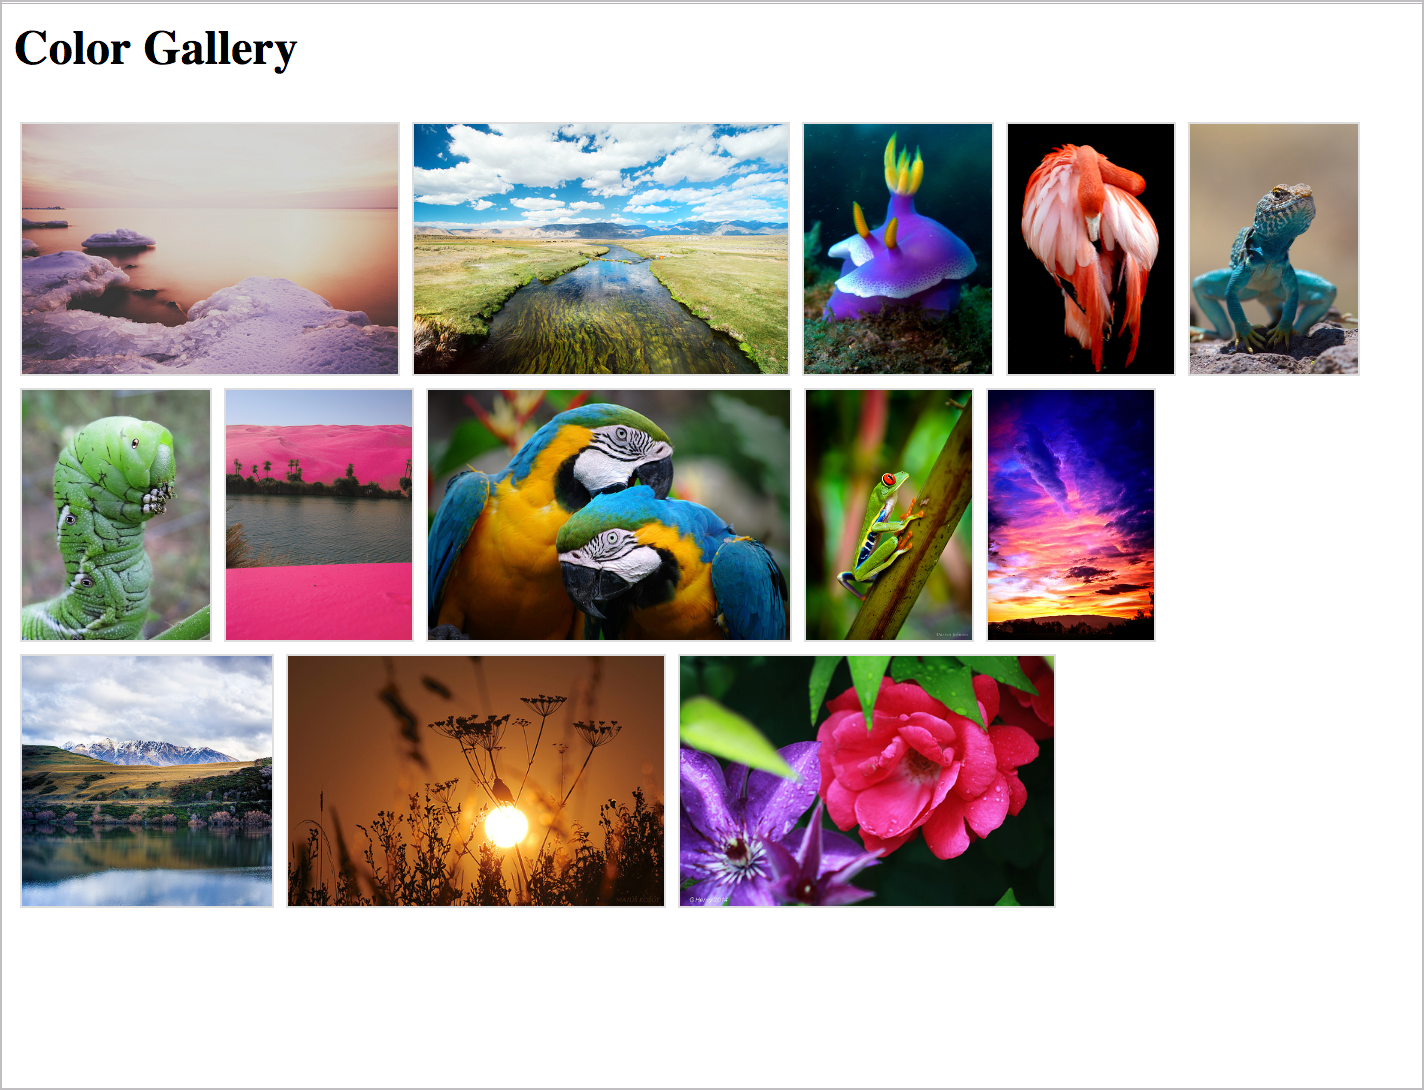 Color Gallery integrated through the Flickr API